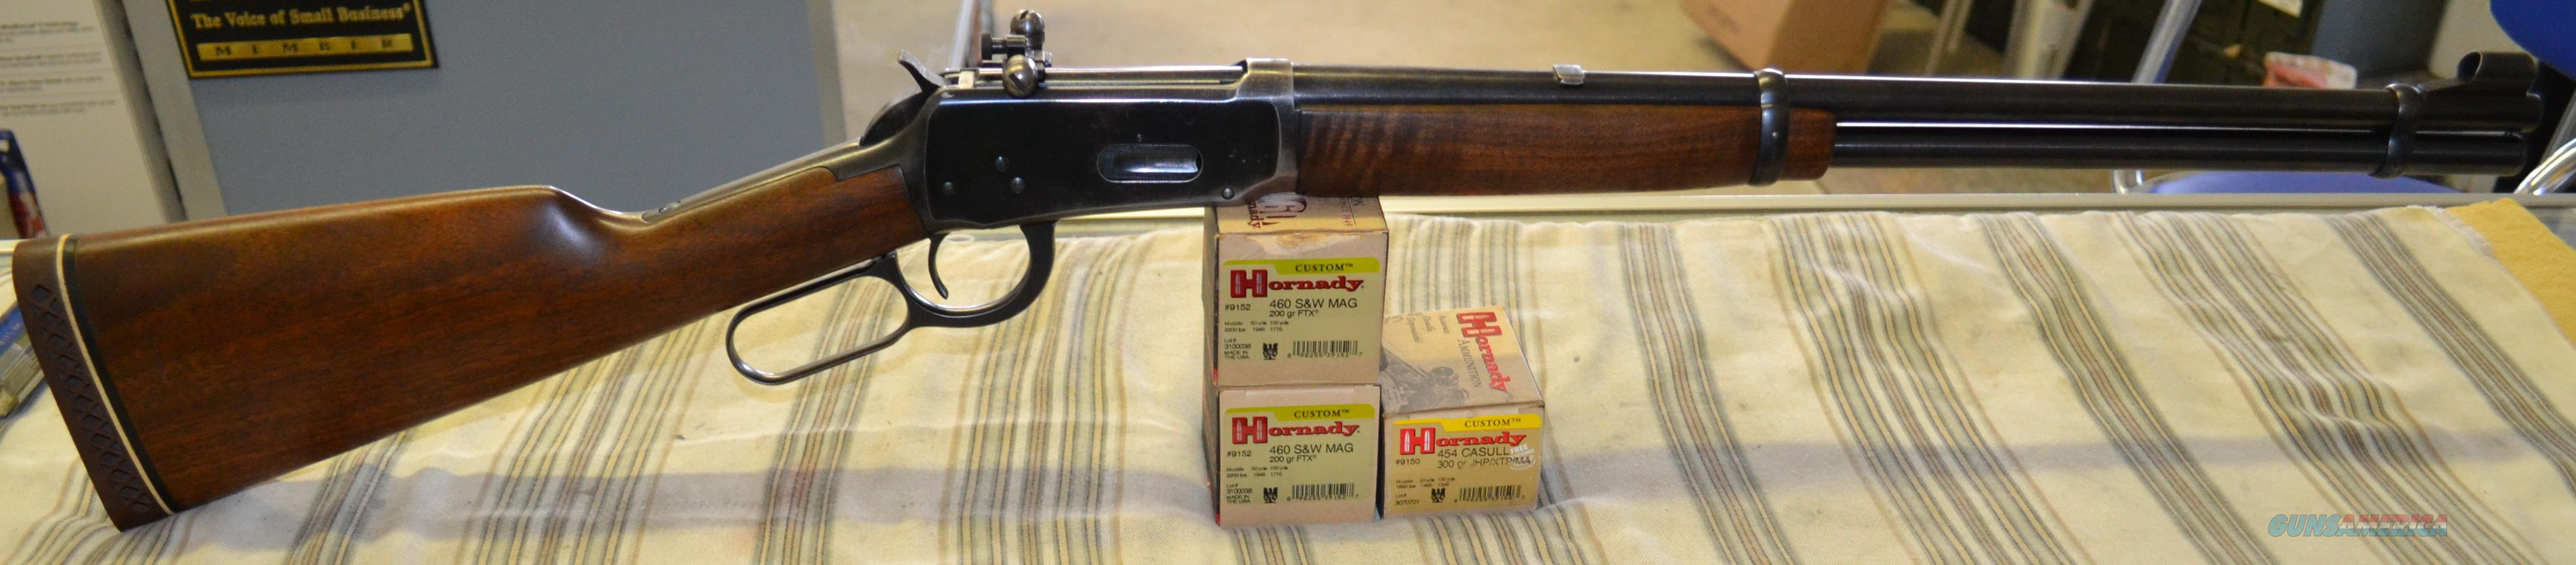 1951 Winchester 1894 Lever chambered in 32 Winchester Special  Guns > Rifles > Winchester Rifles - Modern Lever > Model 94 > Pre-64